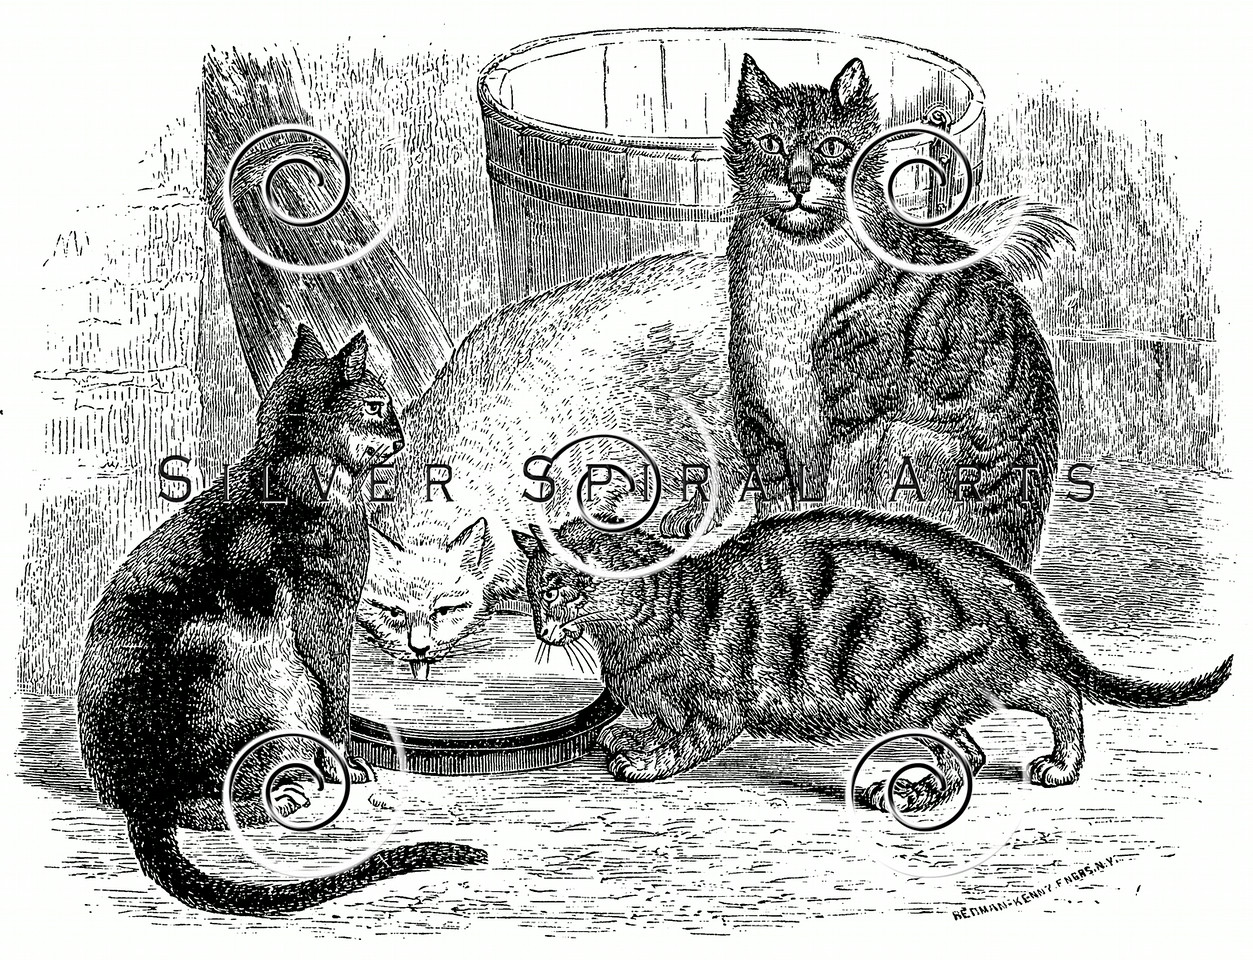 Vintage Cats in Barn Illustration - 1800s Cat Images